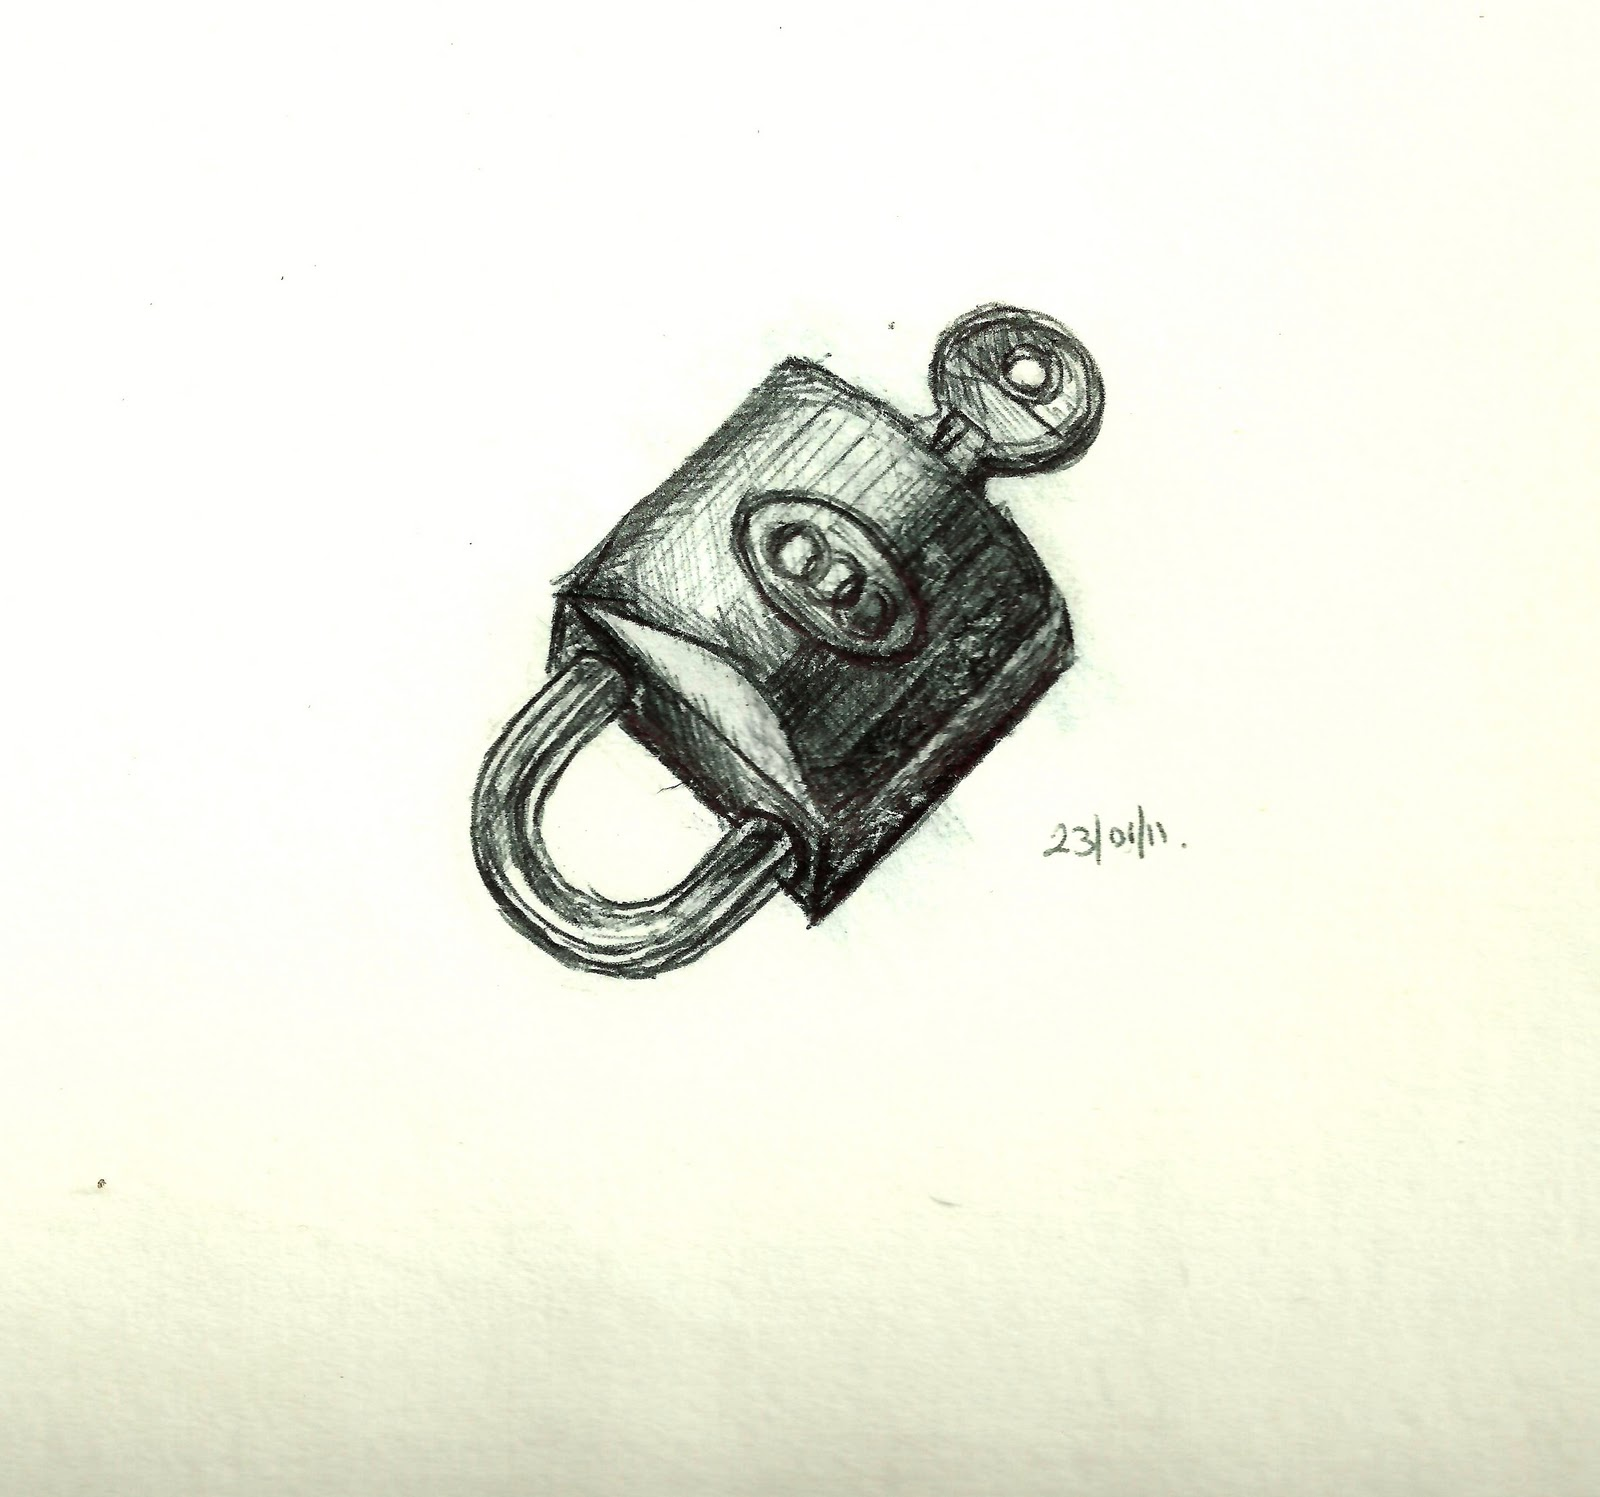 Key and lock drawings